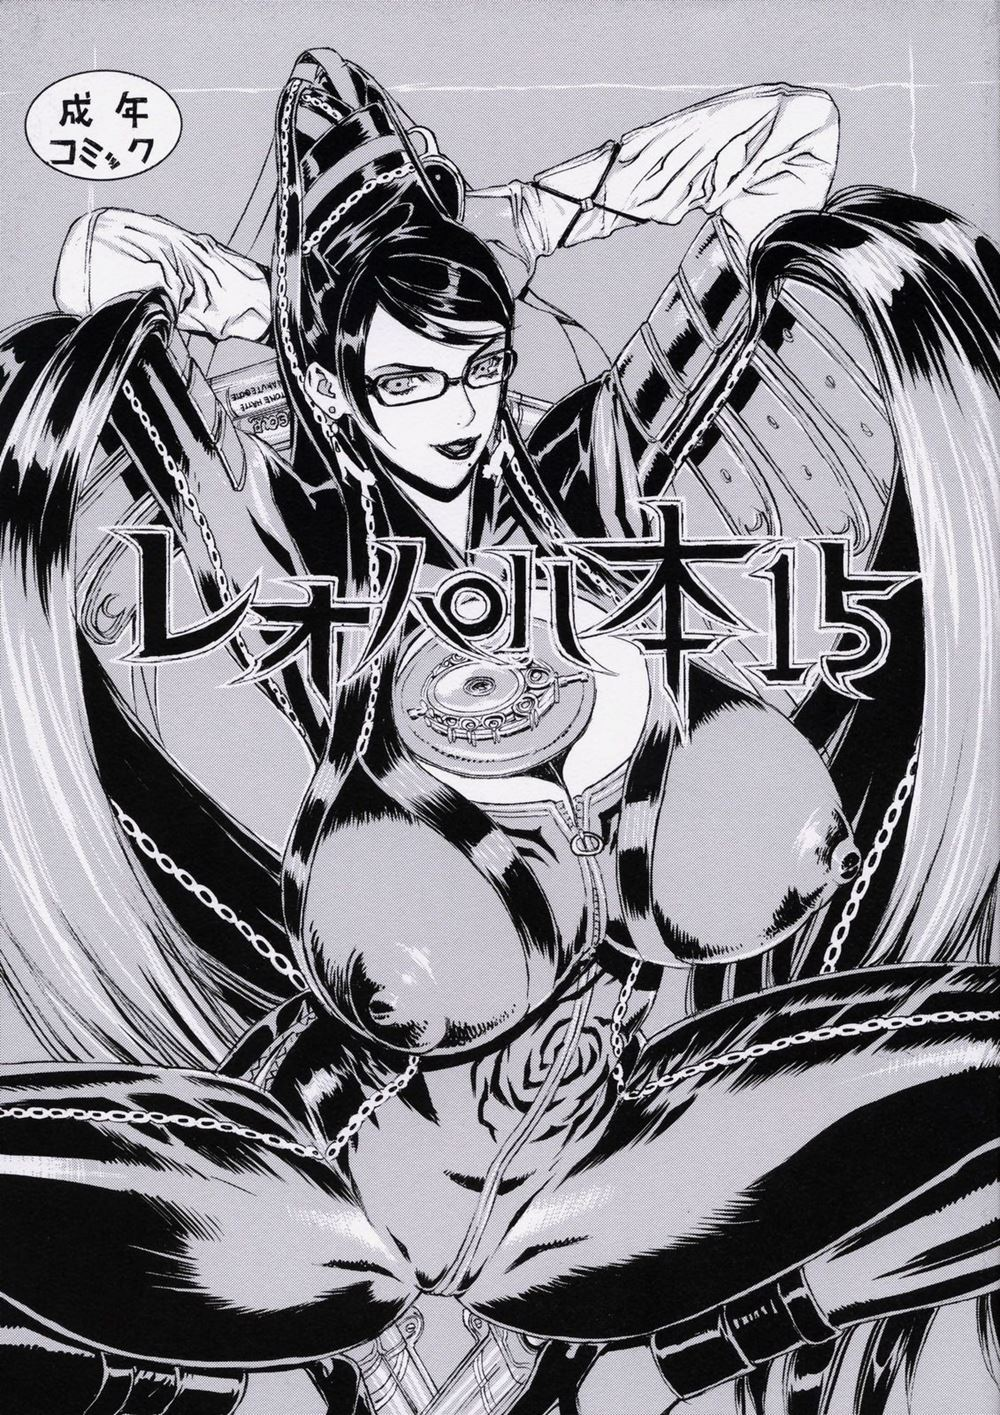 Bayonetta Hentai reading leopard book (original) hentaileopard - 15